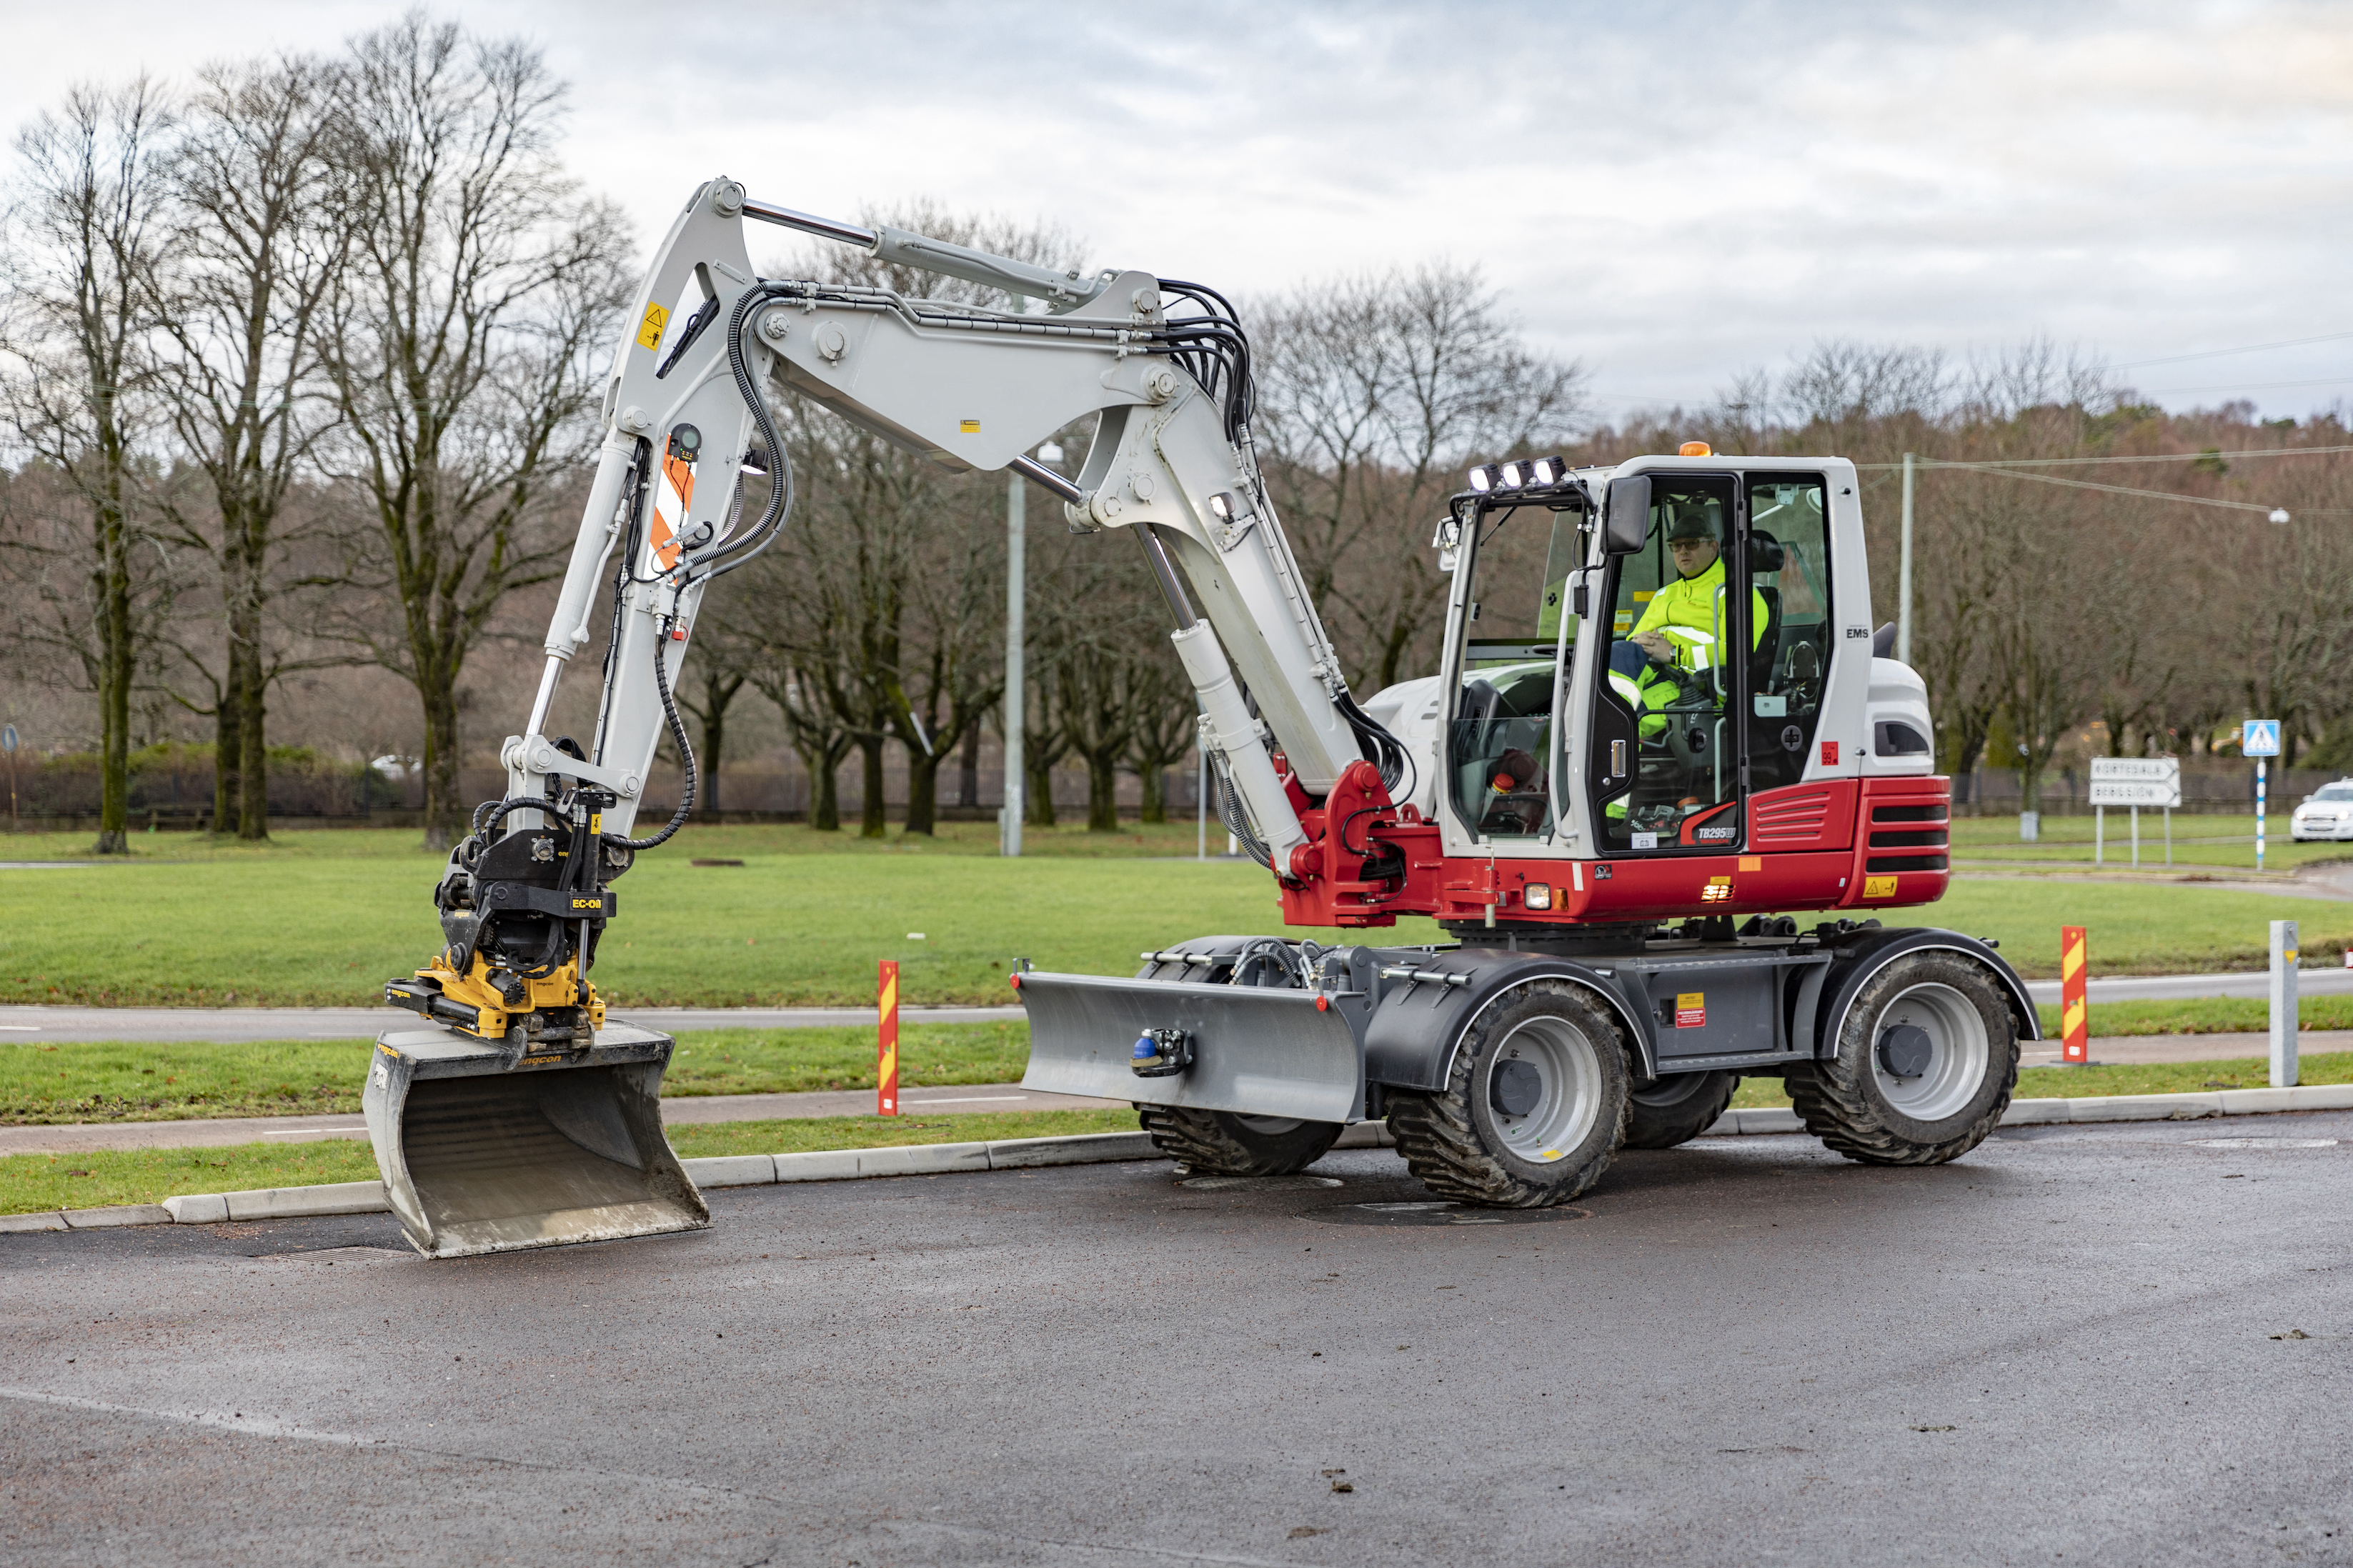 Engcon and Takeuchi expand their collaboration – Nagano factory preparing excavators for tiltrotators